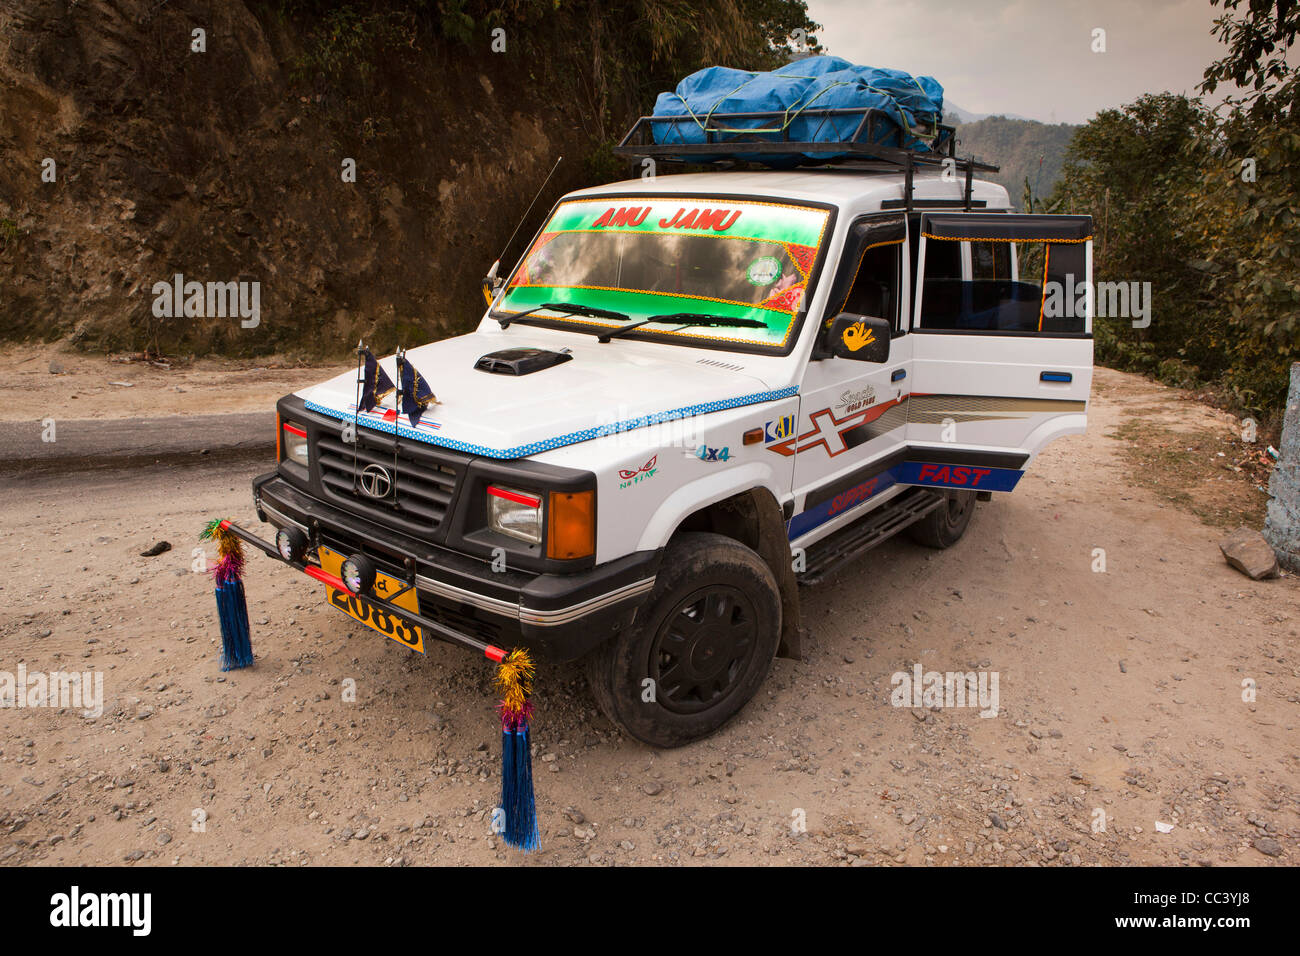 Roof Rack Stock Photos Amp Roof Rack Stock Images Page 3